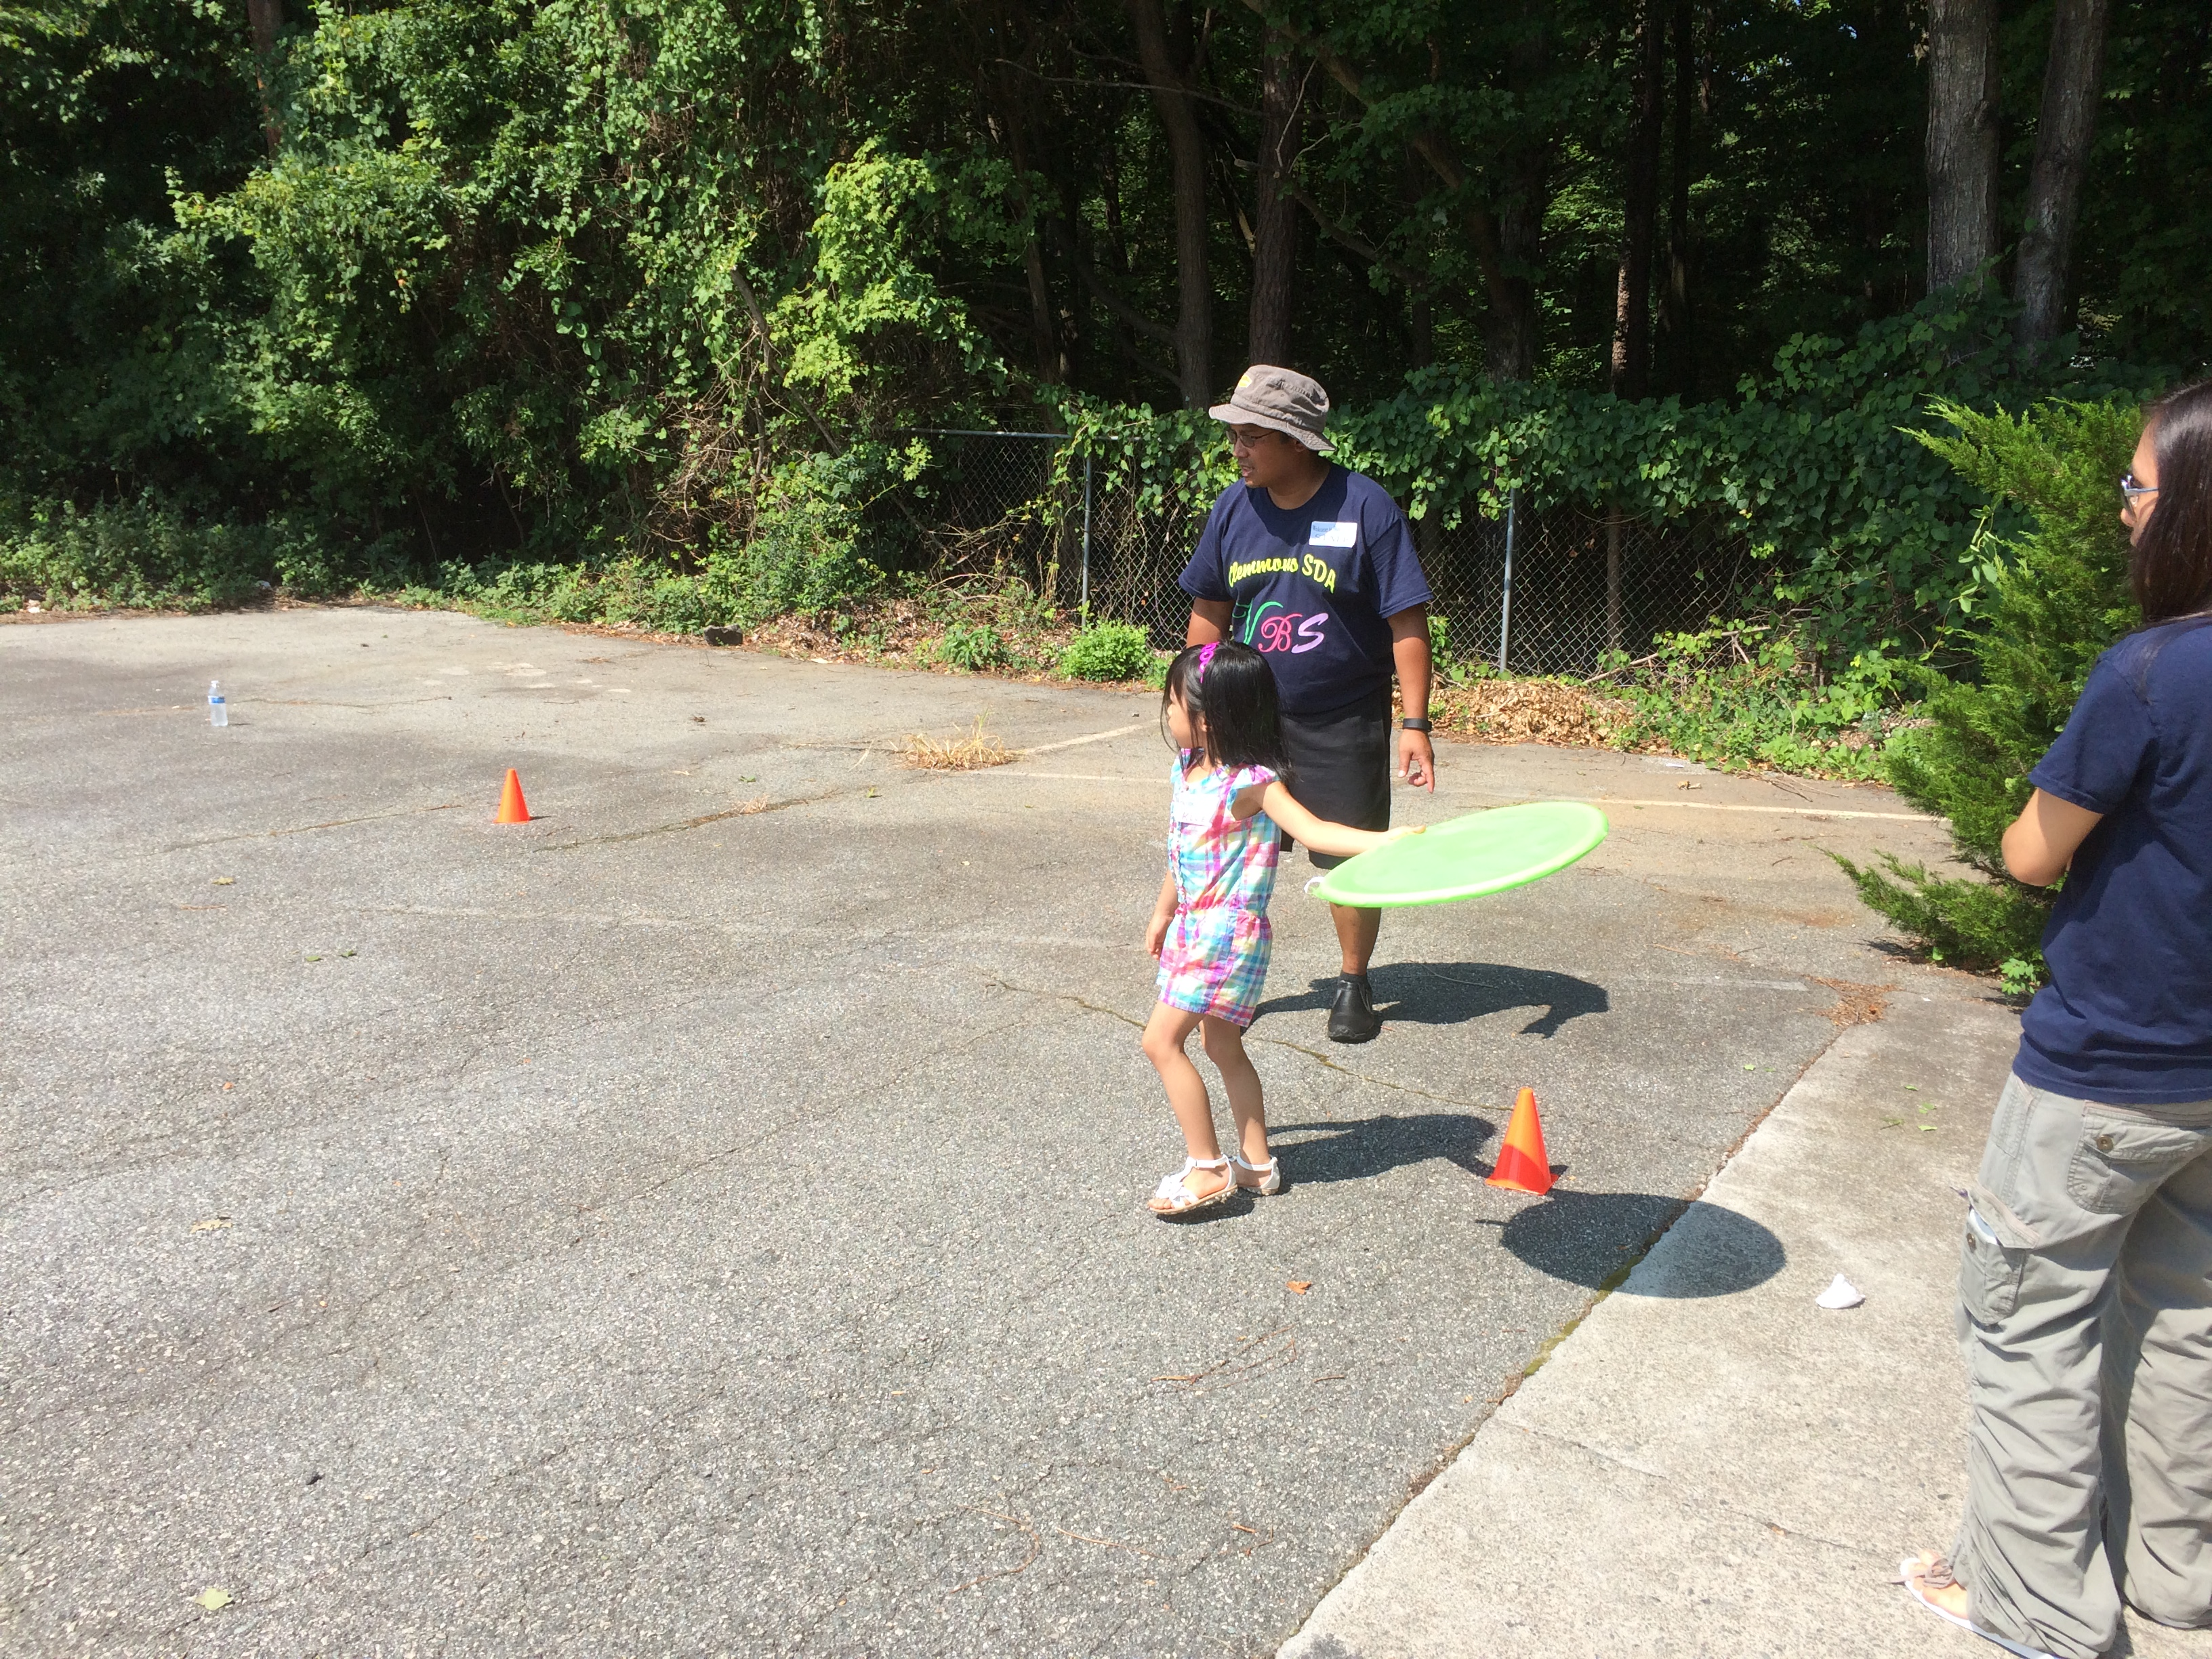 VBS obstacle course